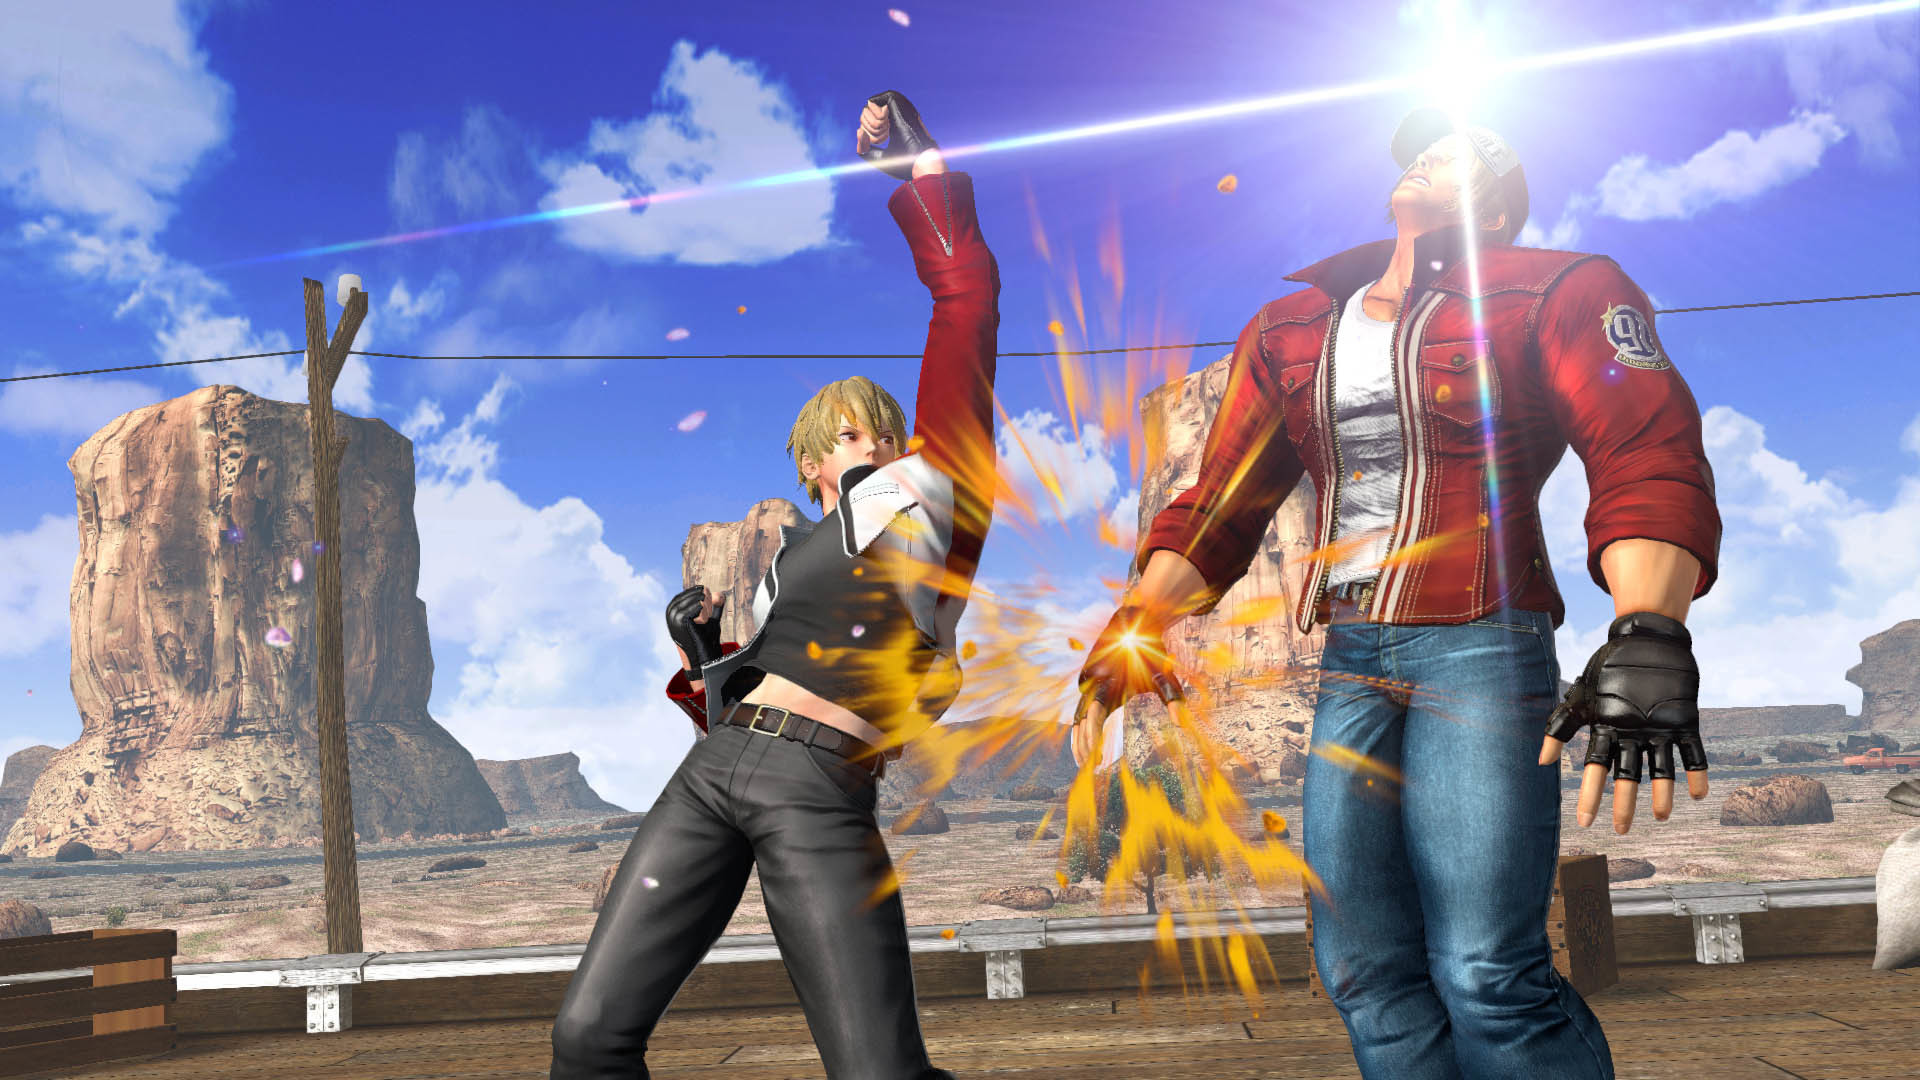 Wallpapers Hd Terry Bogard King Of Fighters 99 58 Images